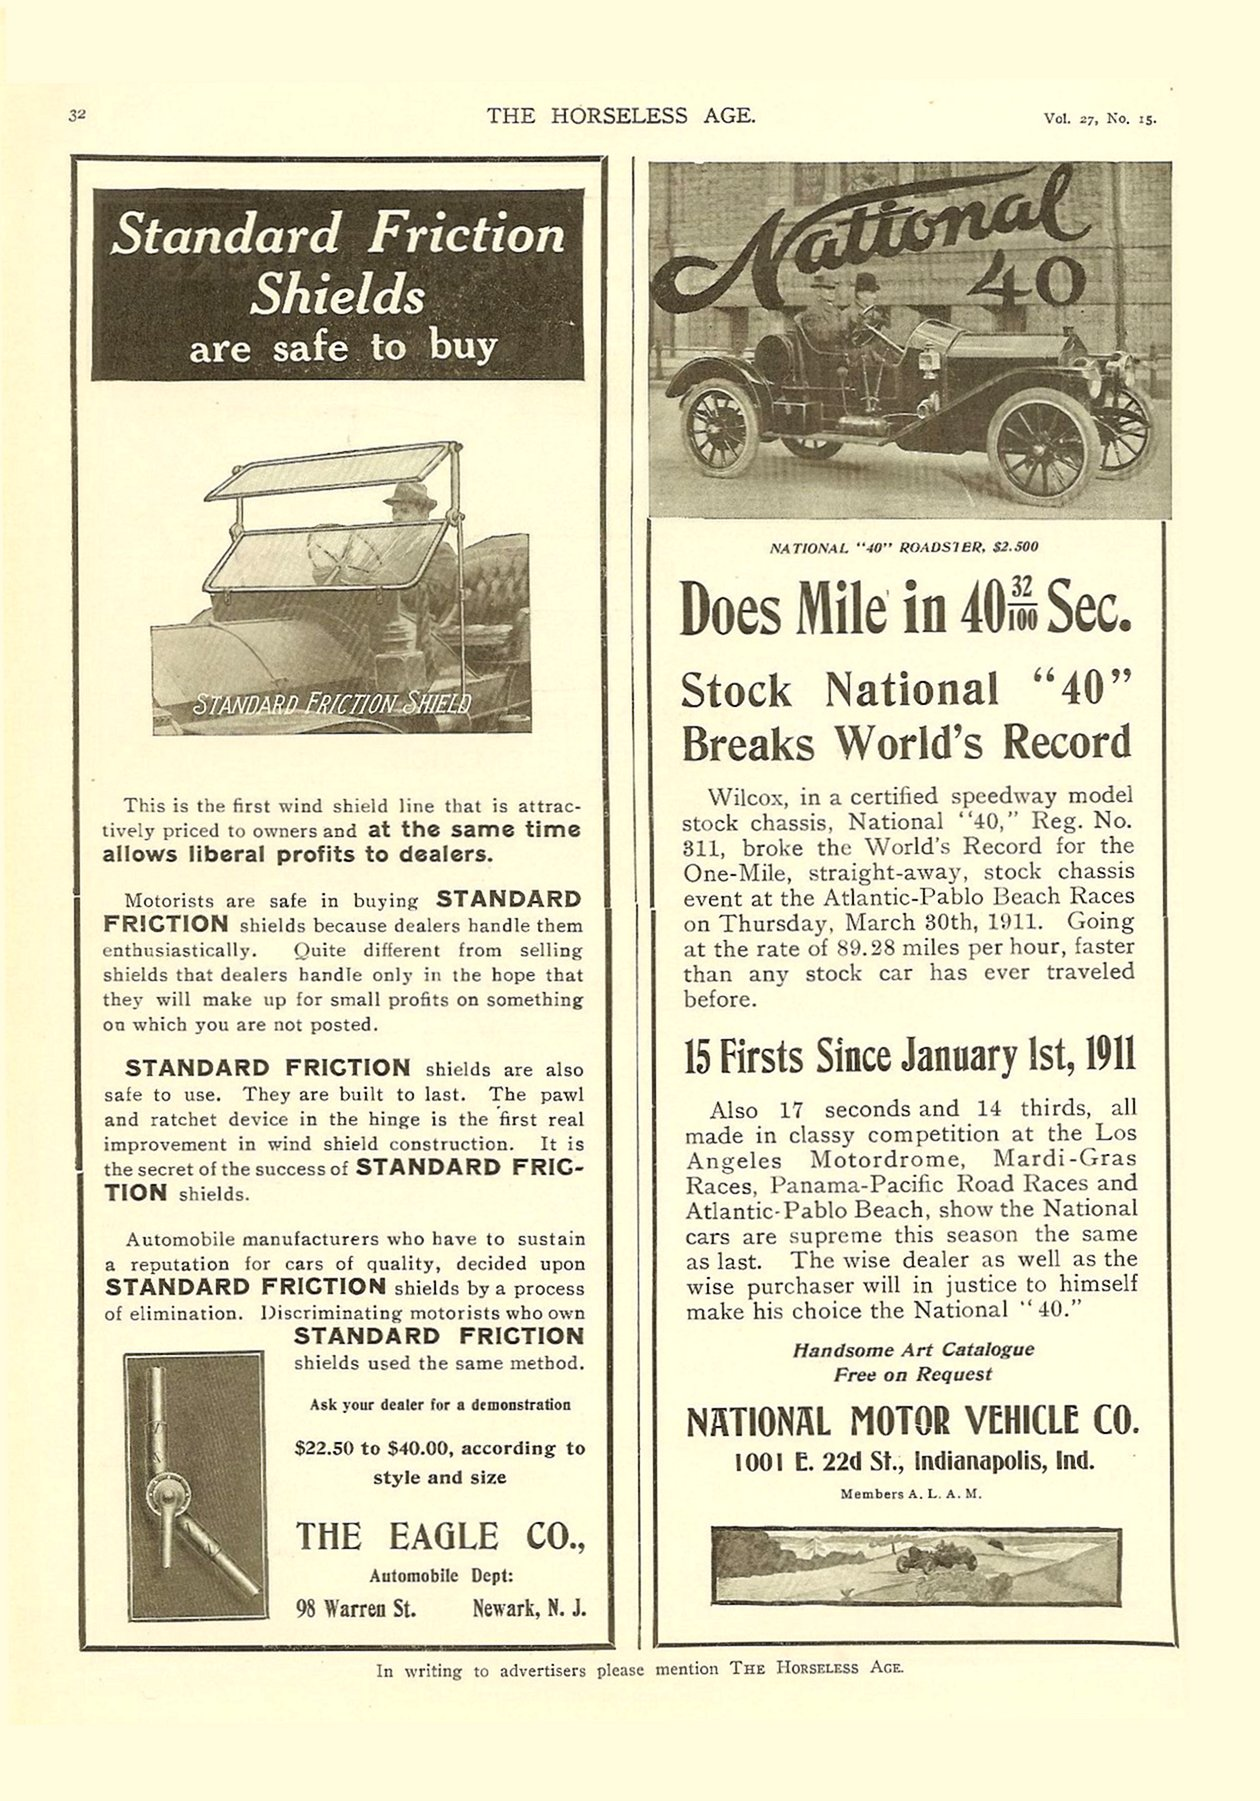 1911 4 12 National 40 Does Mile in 40 32/100 Sec. THE HORSELESS AGE April 12, 1911 Vol. 27 No. 15 9″x12″ page 32